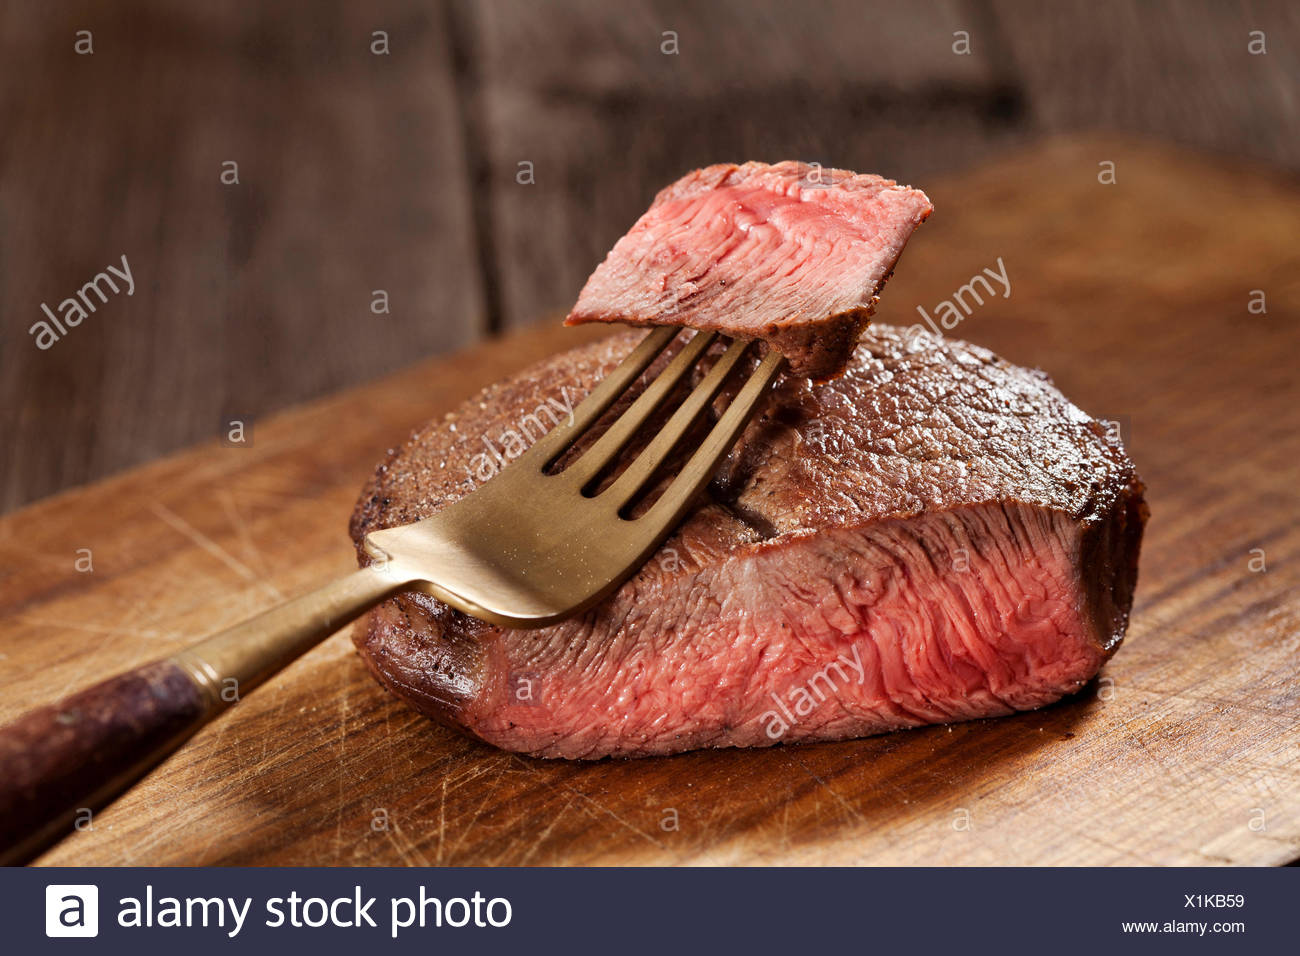 Beef steak cooked to medium rare on wooden background - Stock Image